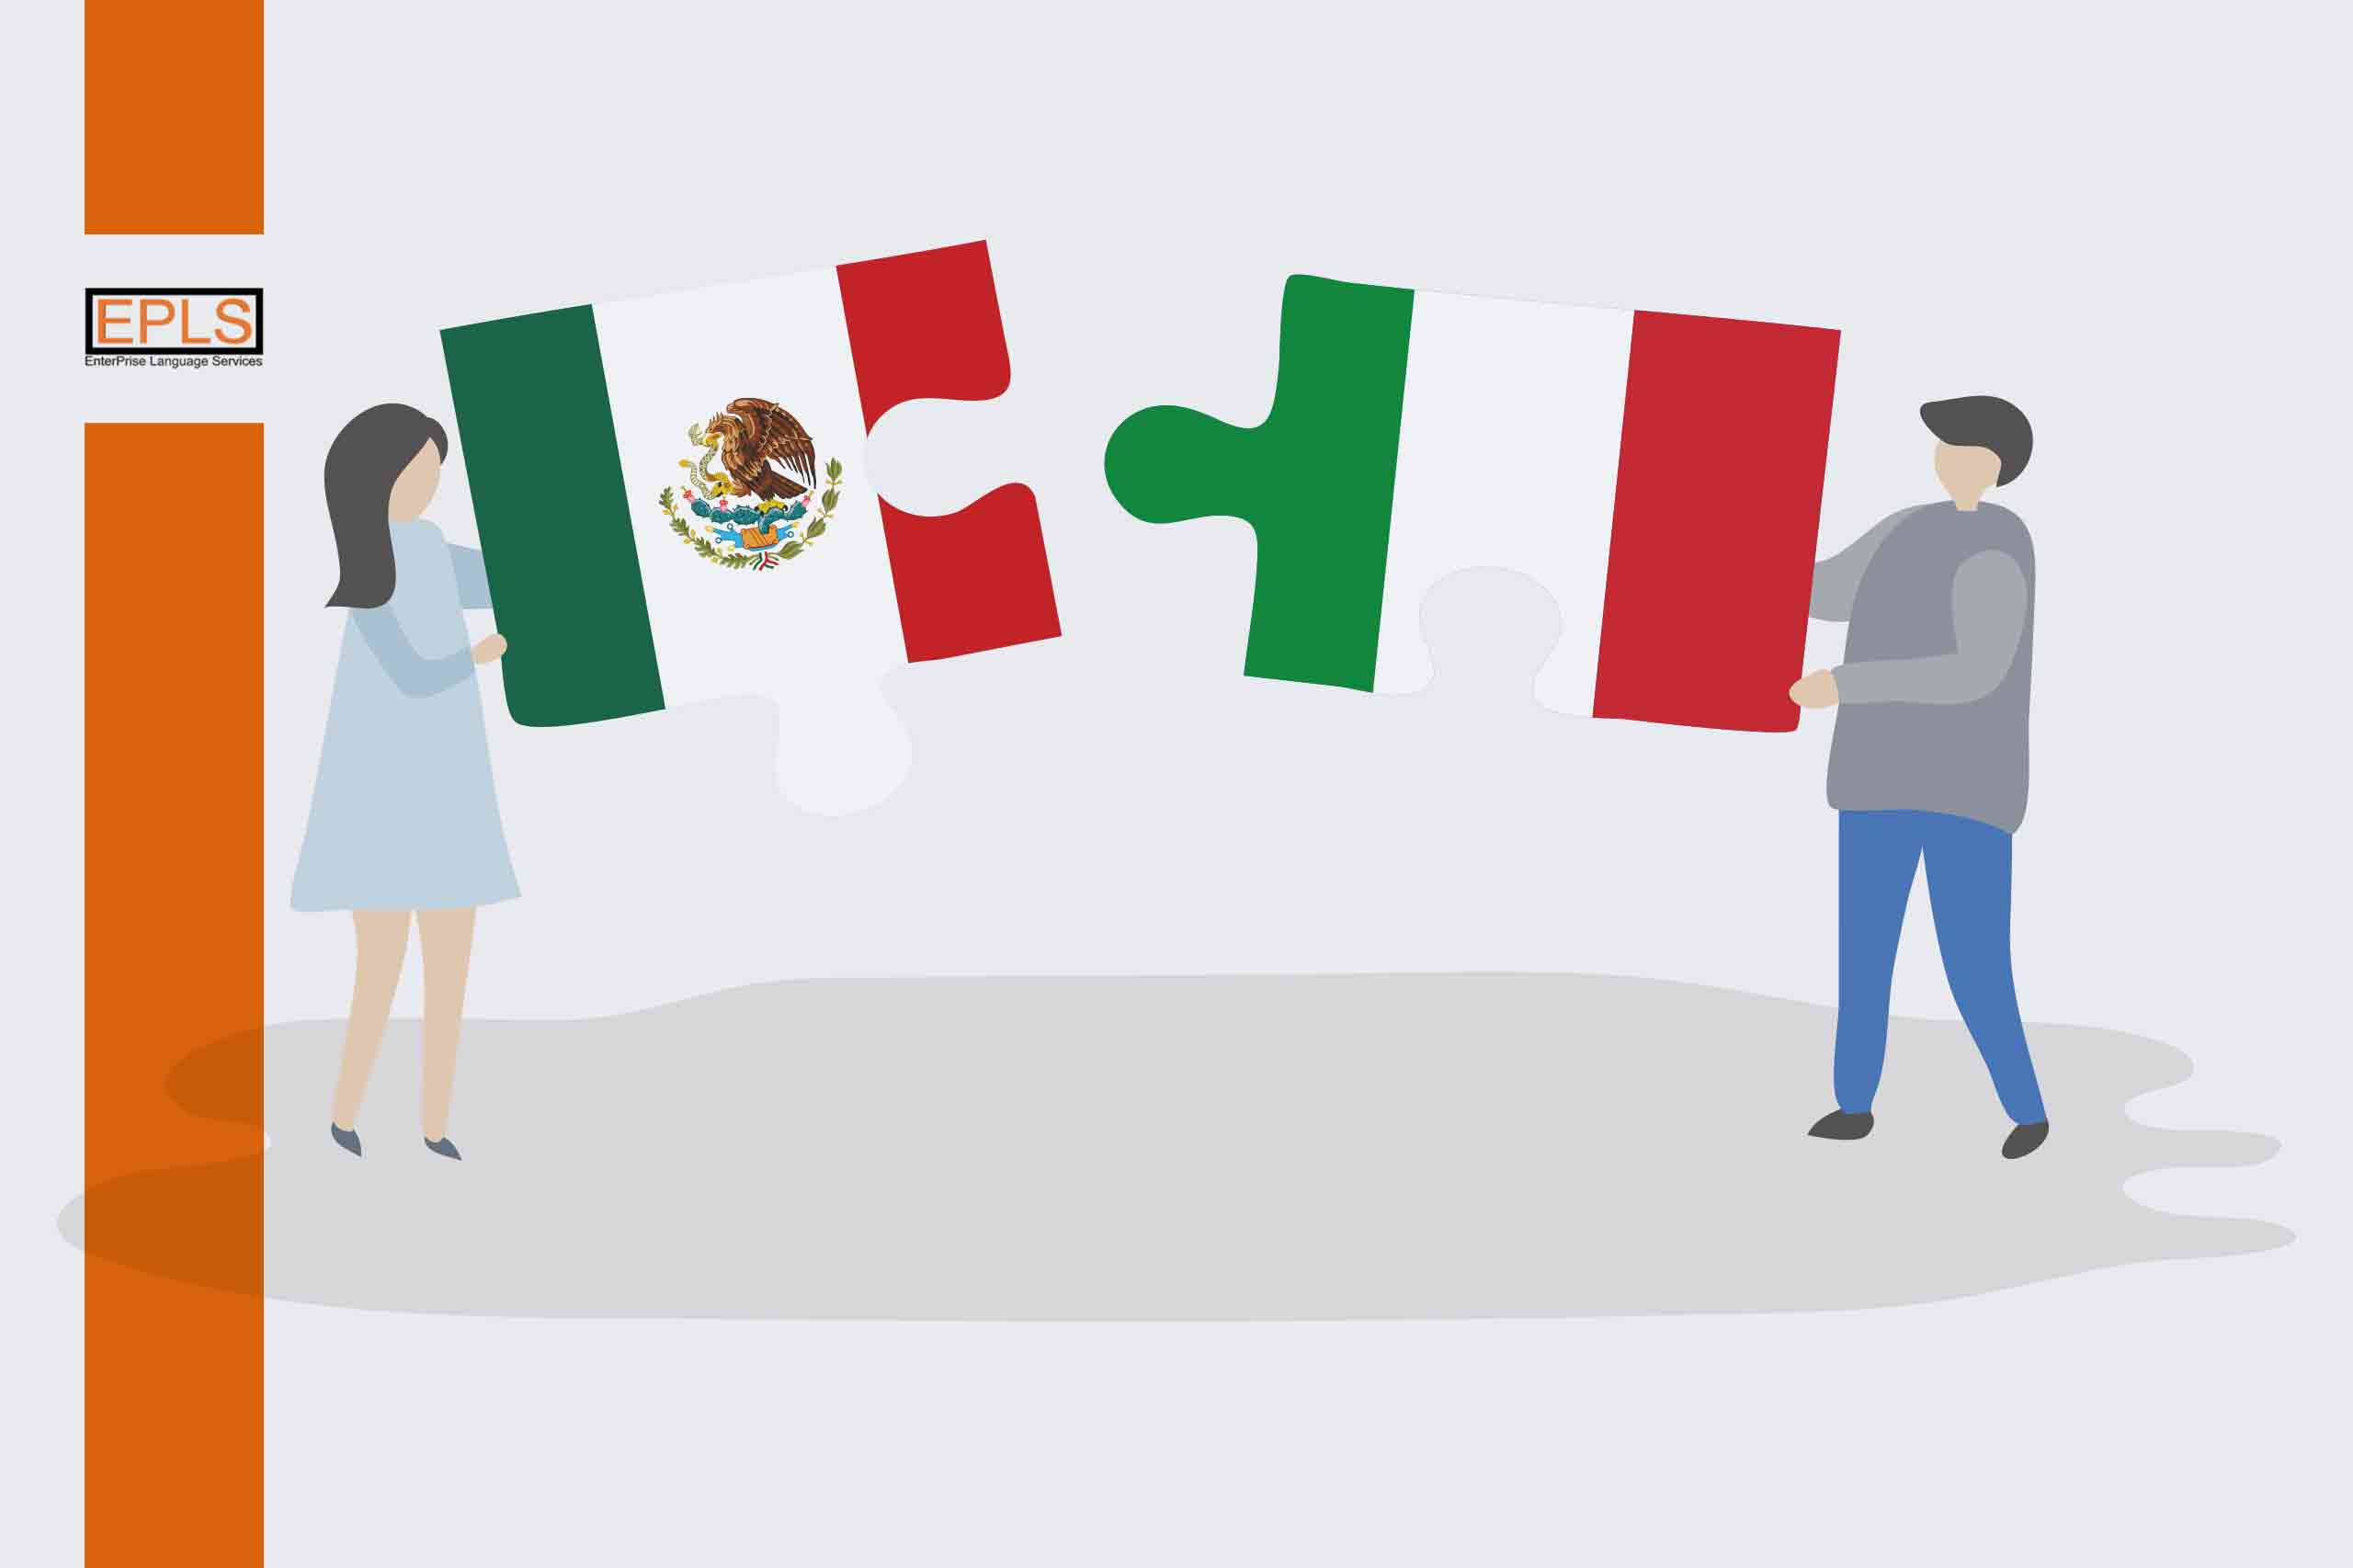 EPLS | Why is it easy for us to Translate from Spanish to Italian